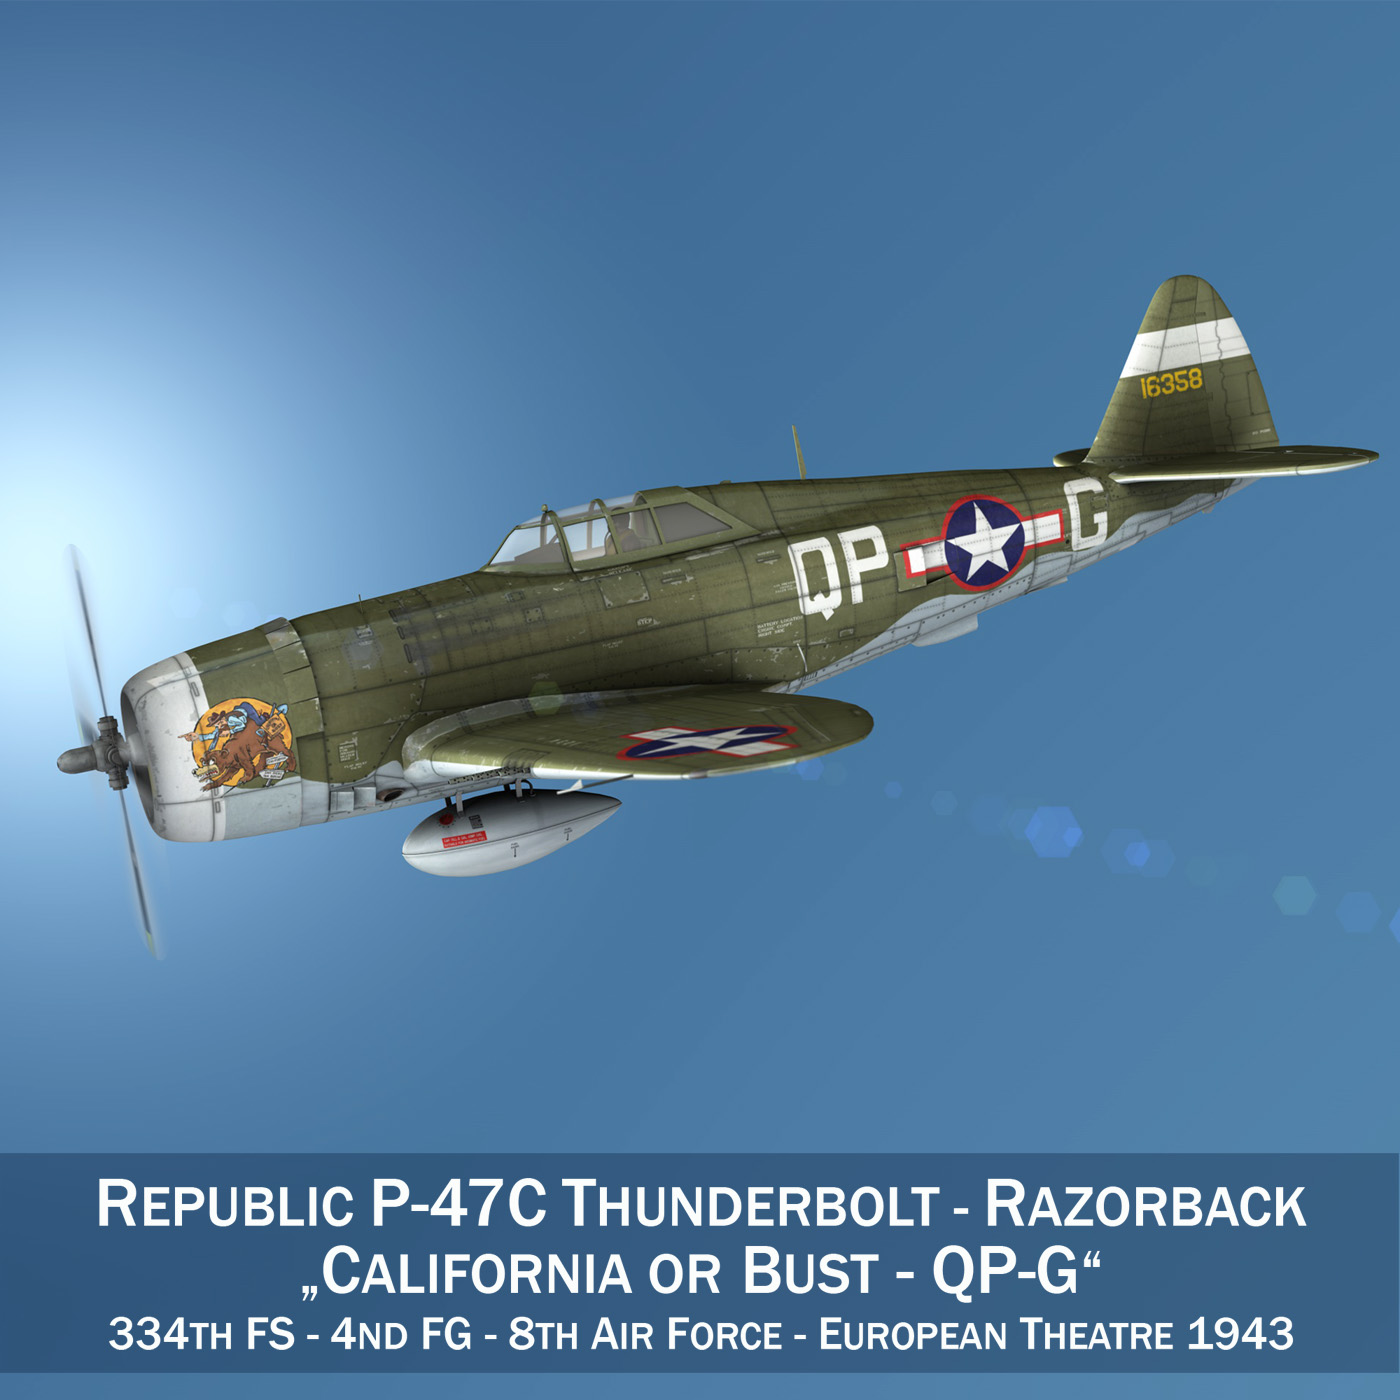 republic p-47c thunderbolt – california or bust 3d model 3ds fbx c4d lwo obj 281805